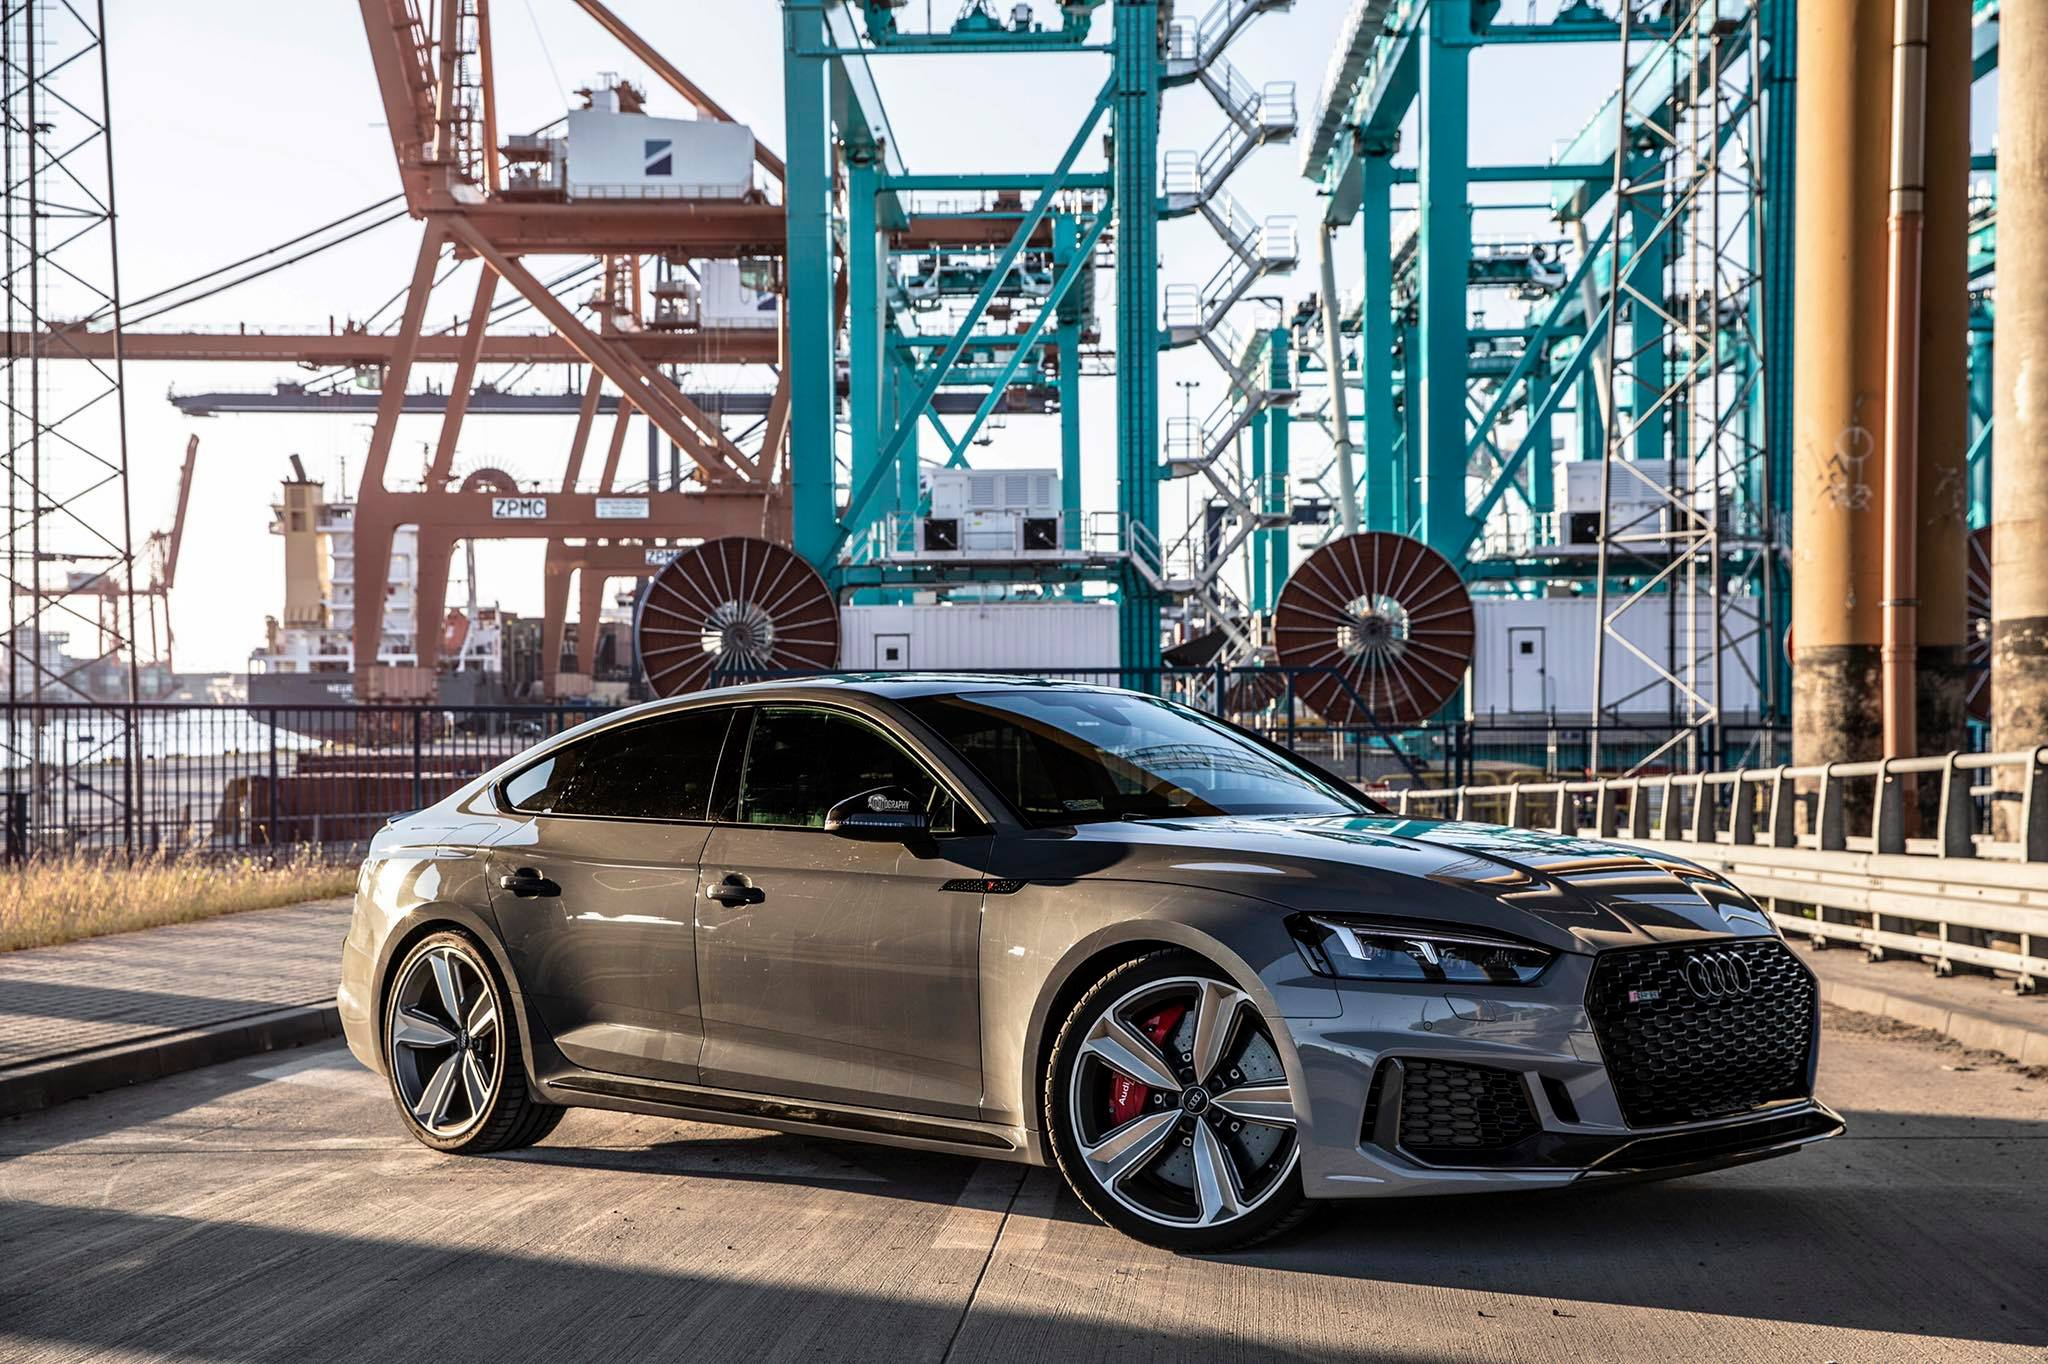 2020 Audi S5 Review.Is The 2020 Audi Rs5 Sportback Now The Best Looking 4 Door